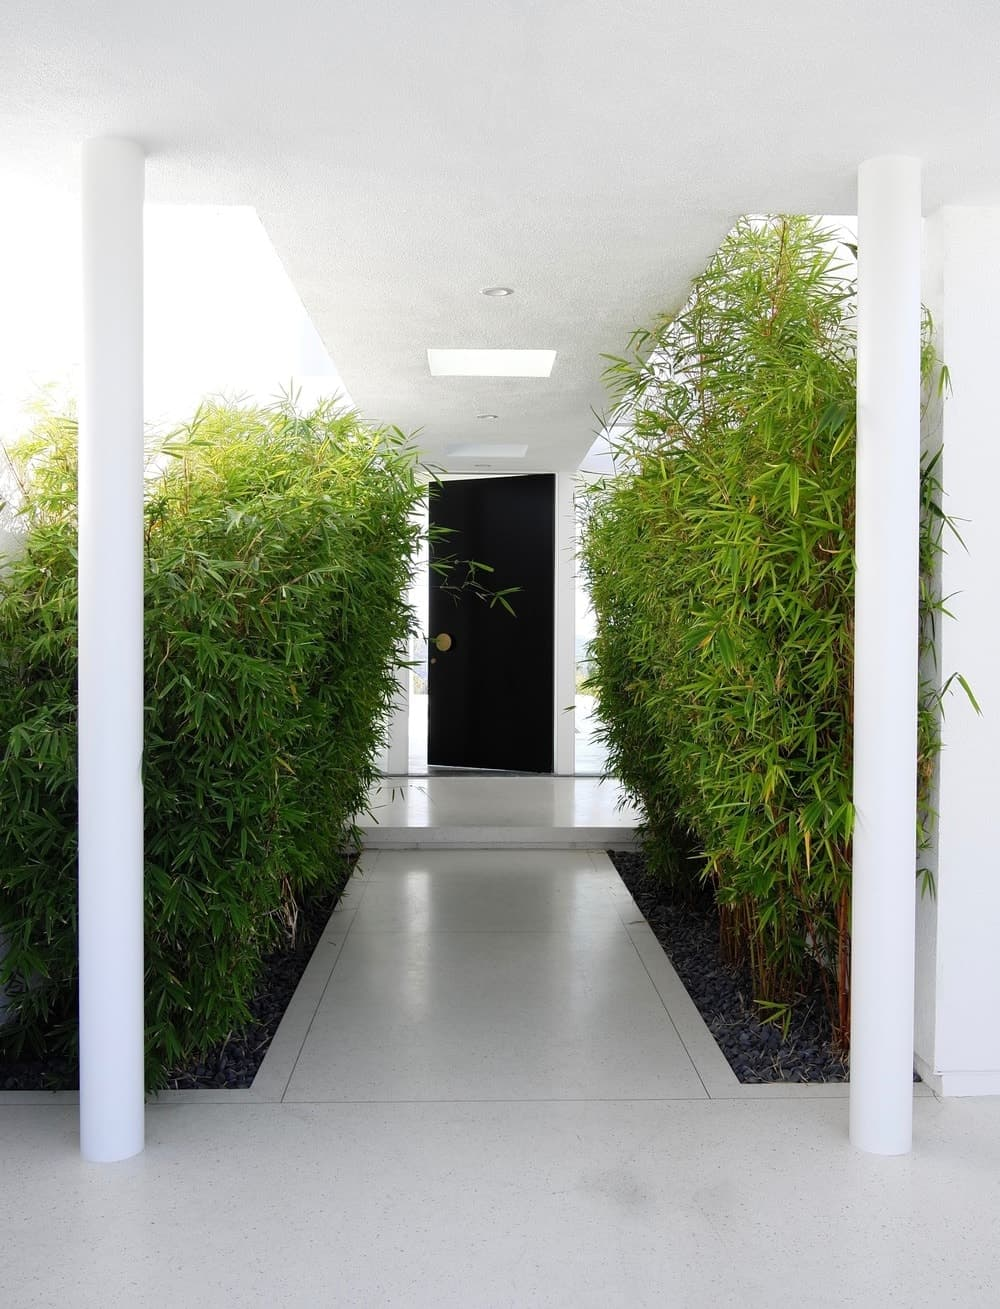 The home's entrance is surrounded by green and healthy plants. Photo Credit: Gerhard Heusch